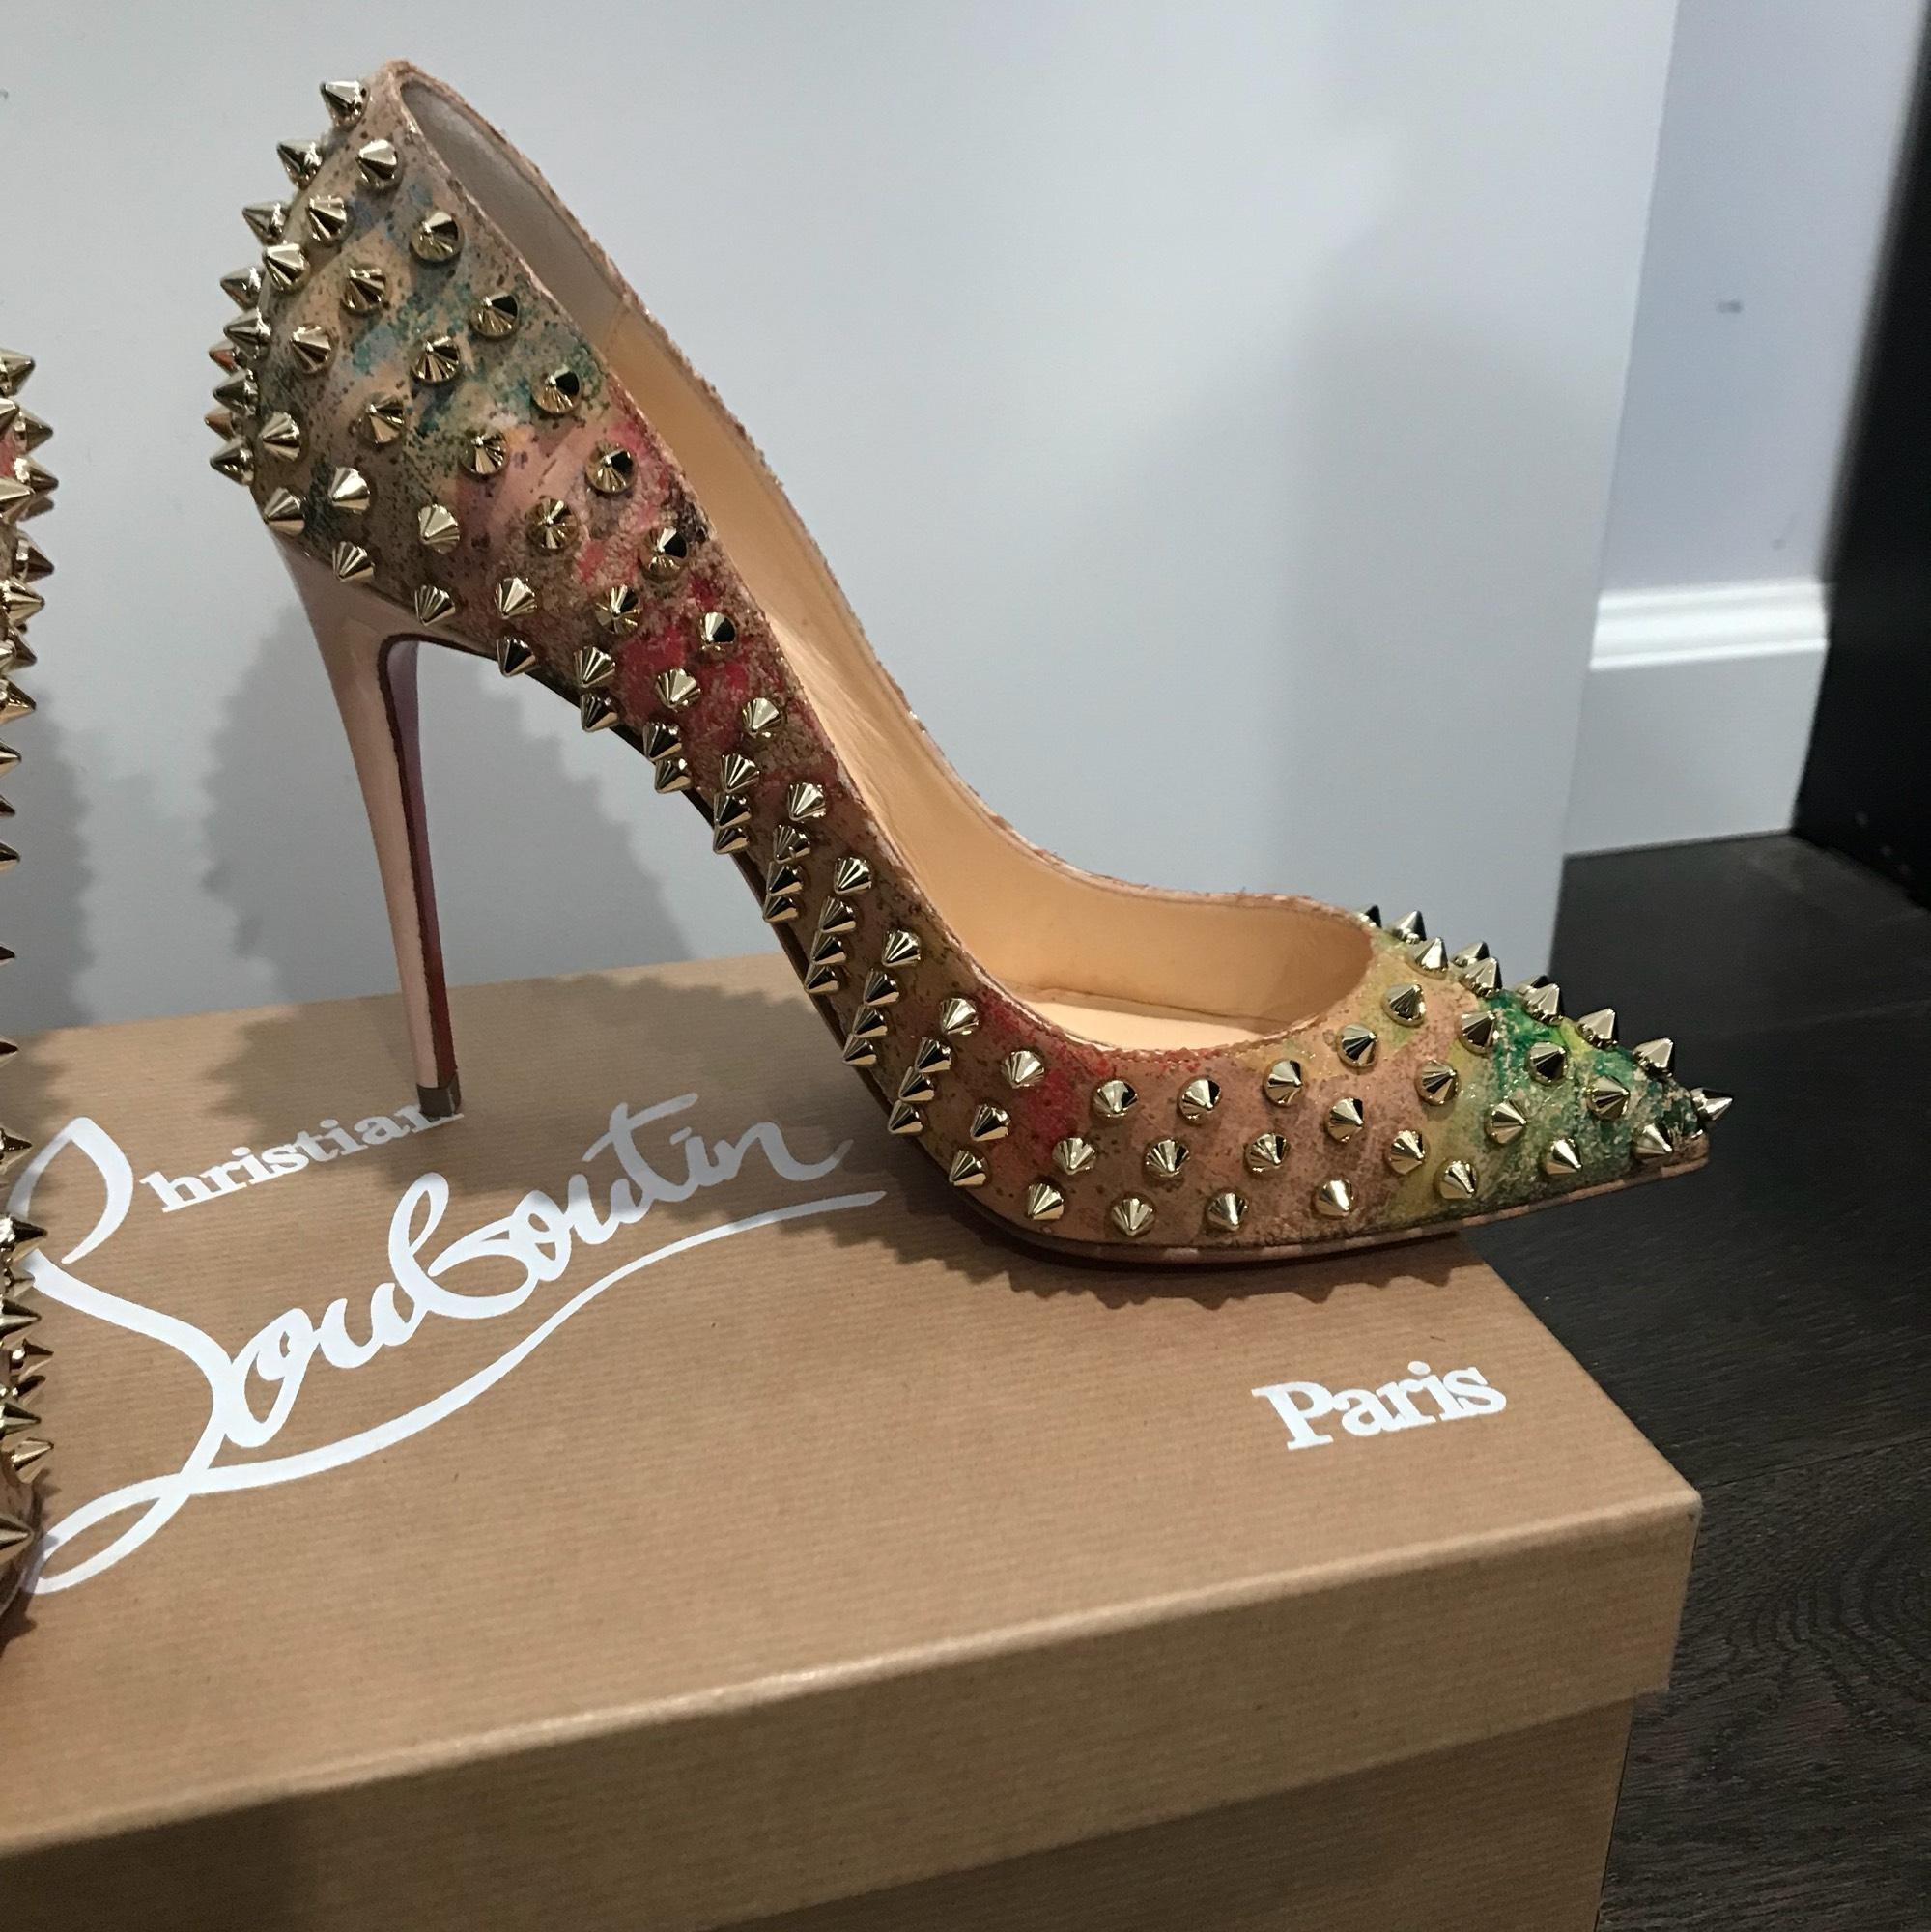 7819f10b4b7 Christian Louboutin Multicolor Follies Spikes Blooming-cork 100mm ...